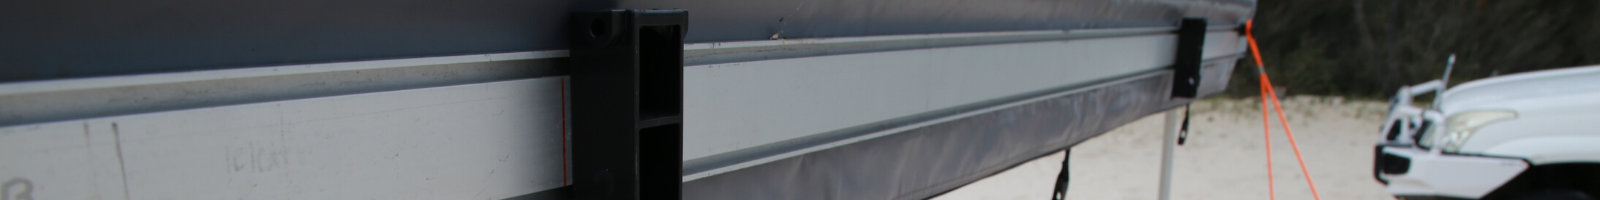 Close up of RacksBrax Holders attached the awning accessory